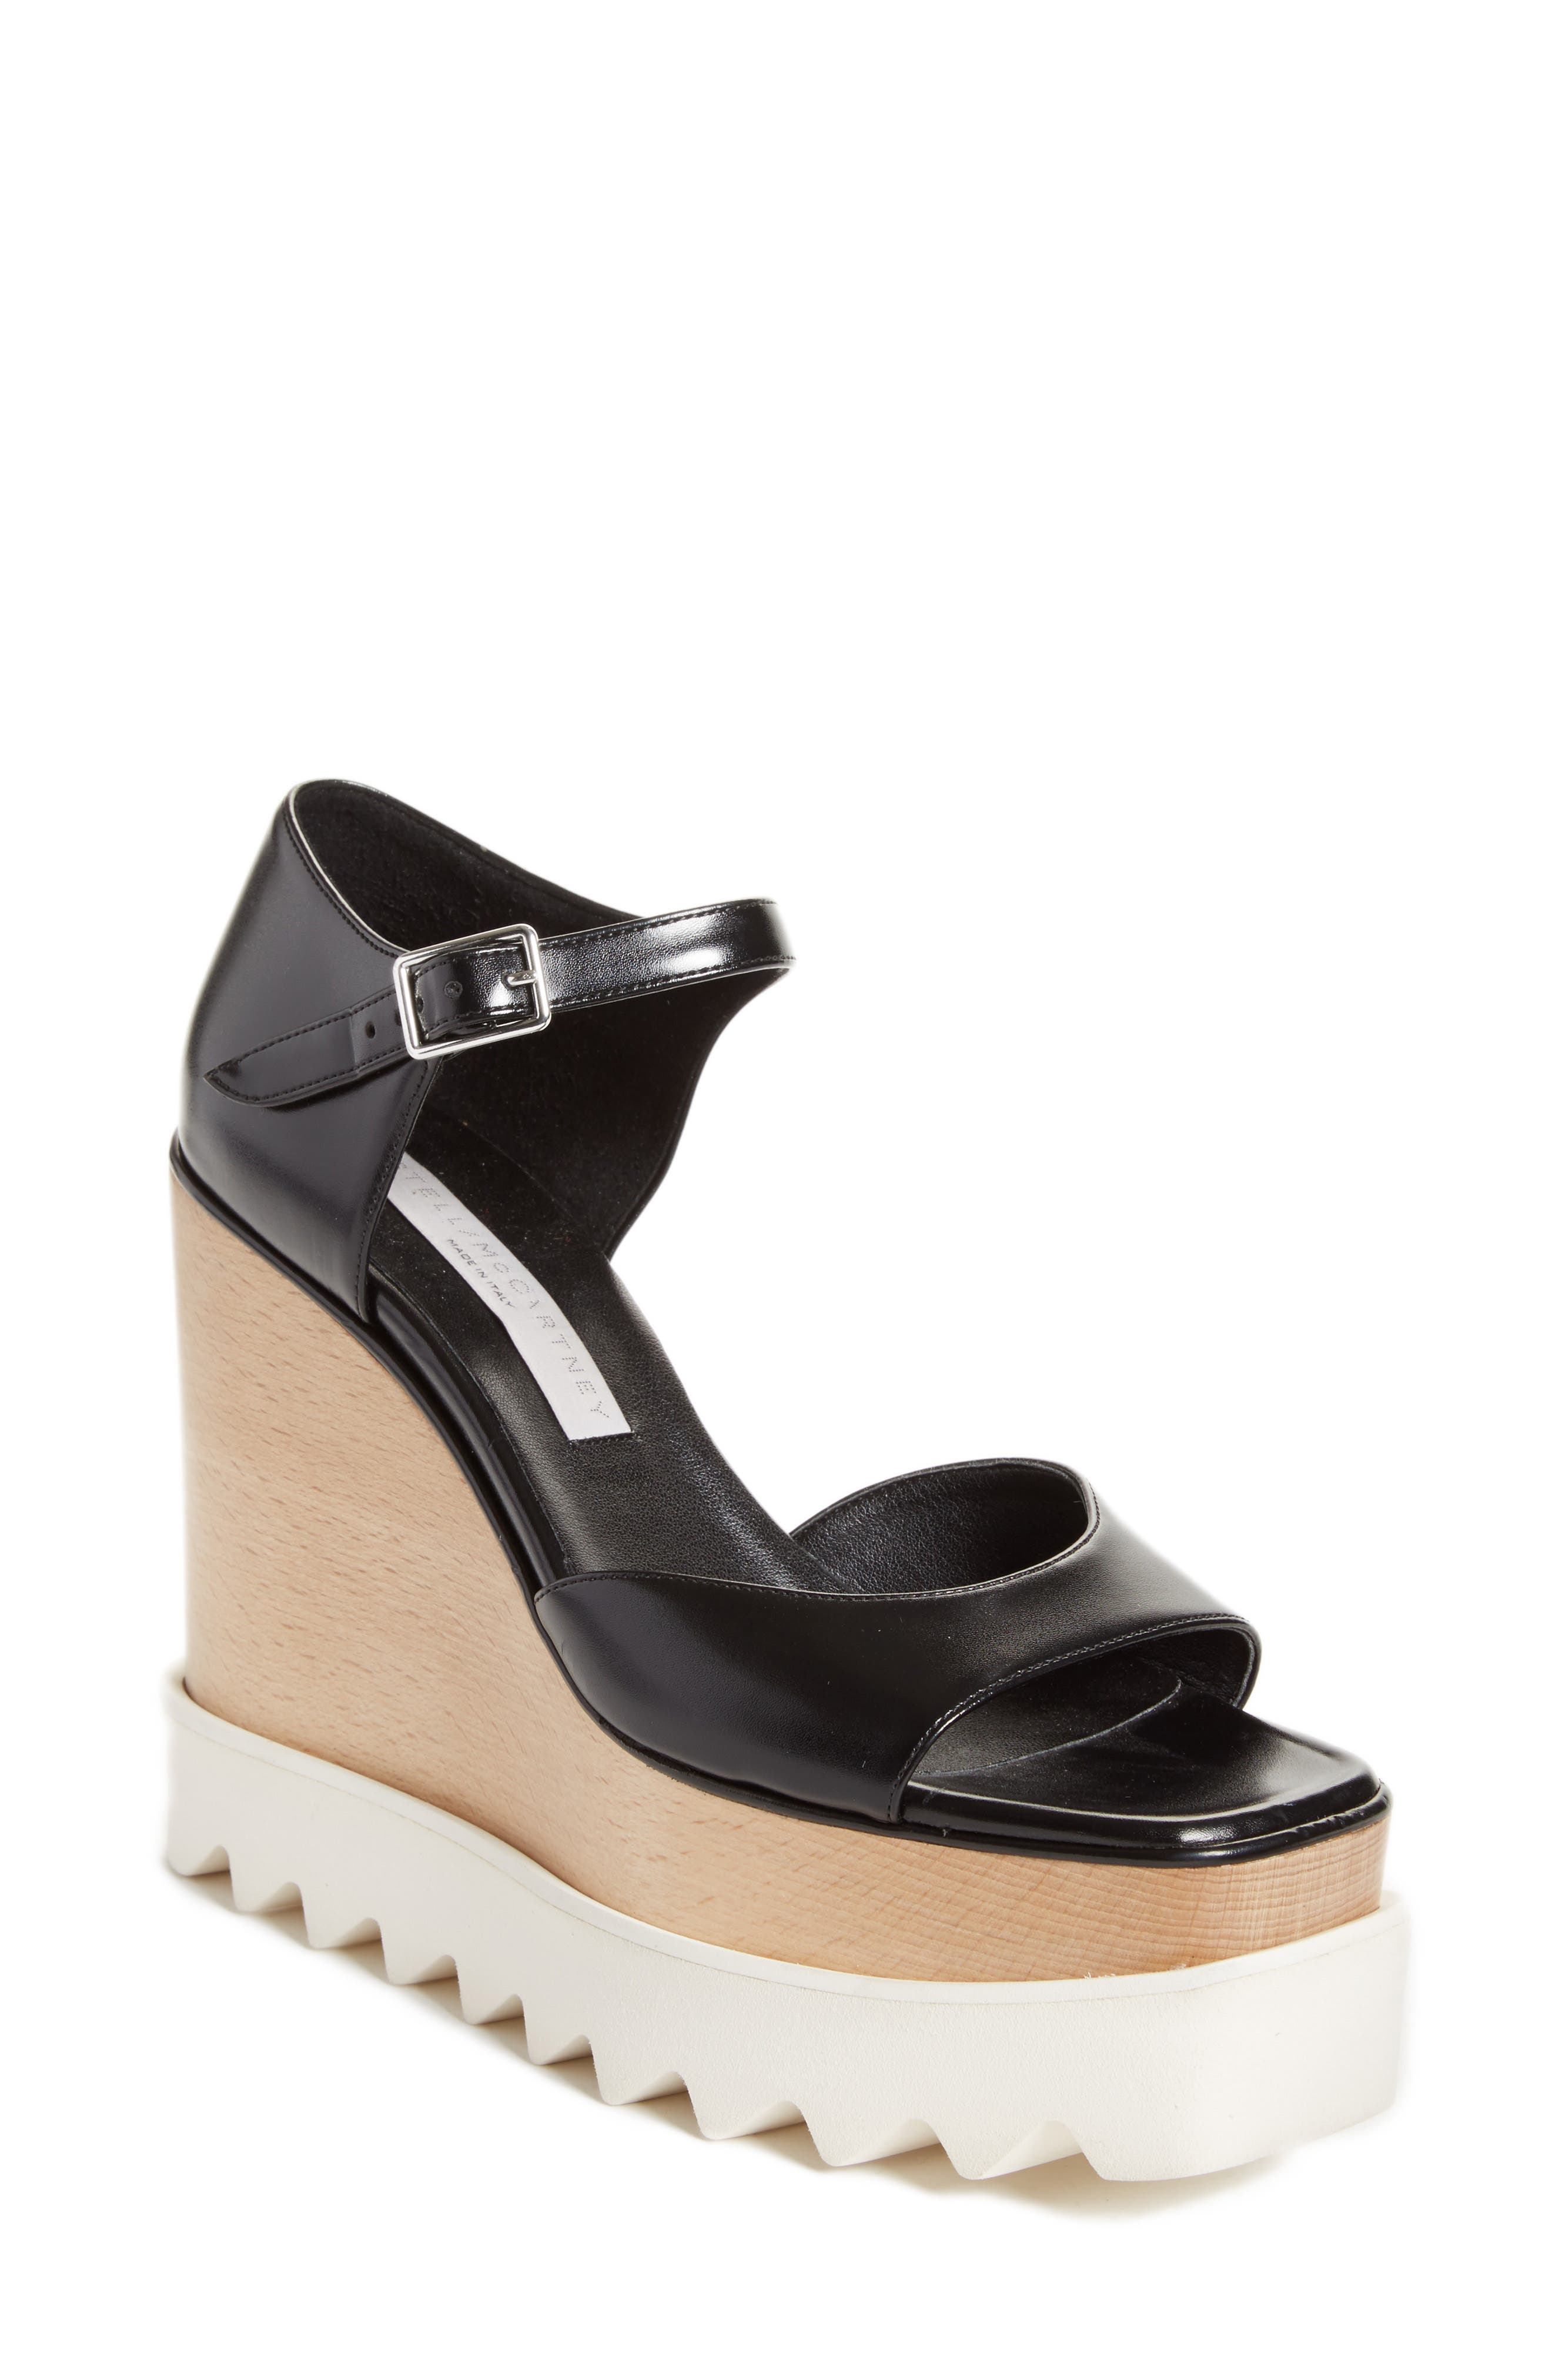 Main Image - Stella McCartney Platform Wedge Sandal (Women)